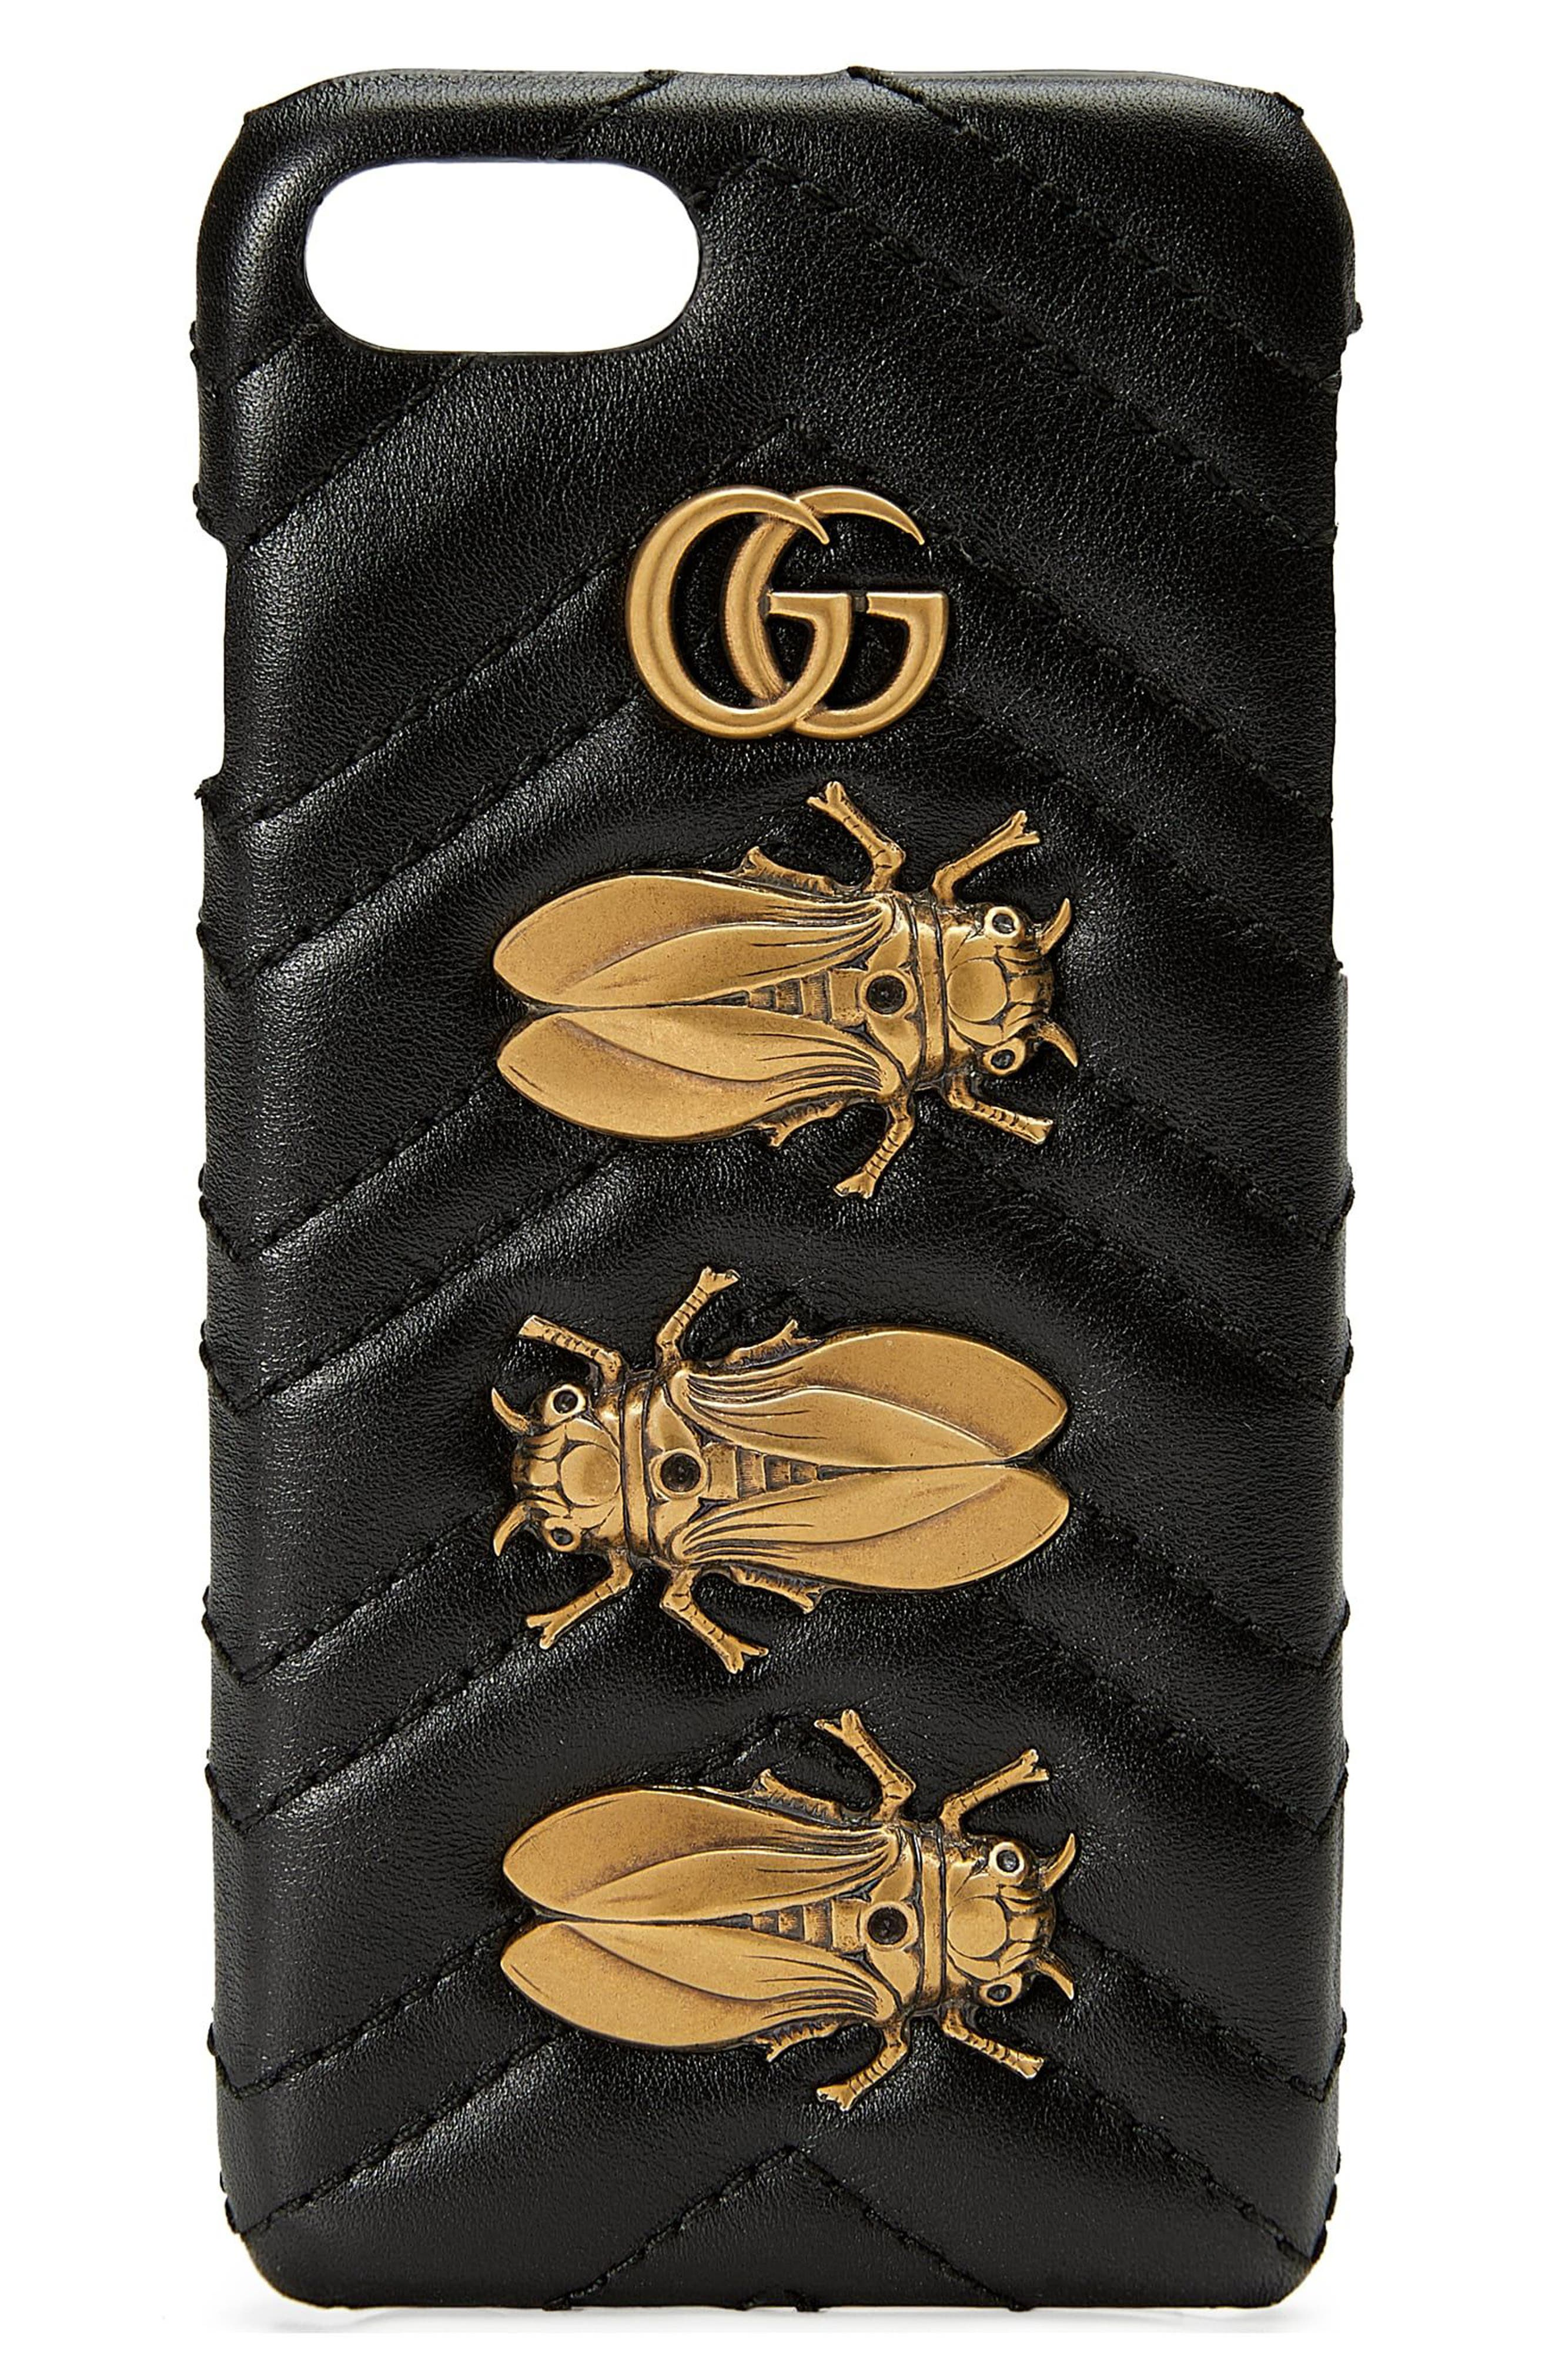 Gucci GG Marmont 2.0 Matelassé Leather iPhone 7 Case